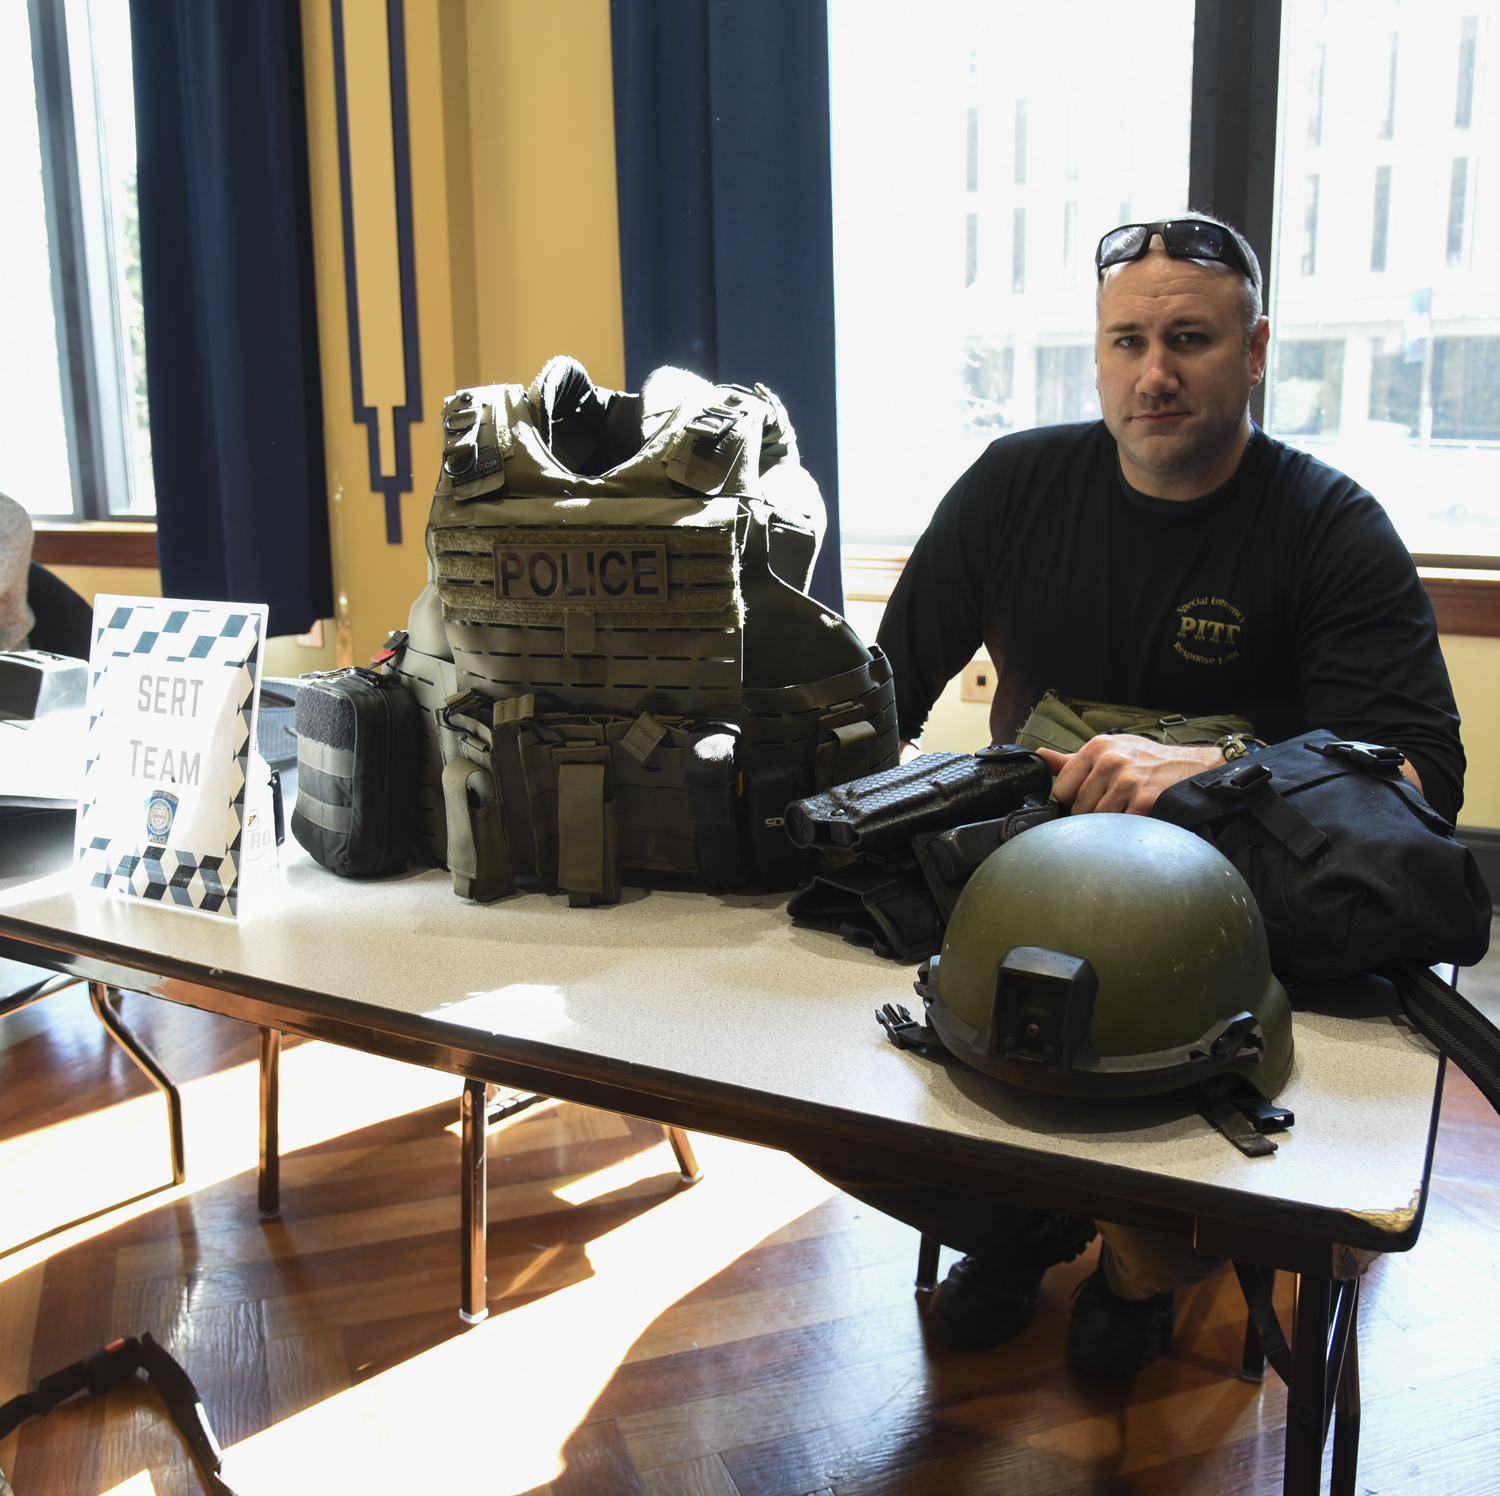 Mike Matta, a detective at the Pitt Police and a member of the Special Emergency Response Team, sits at a table informing visitors about the SERT team.